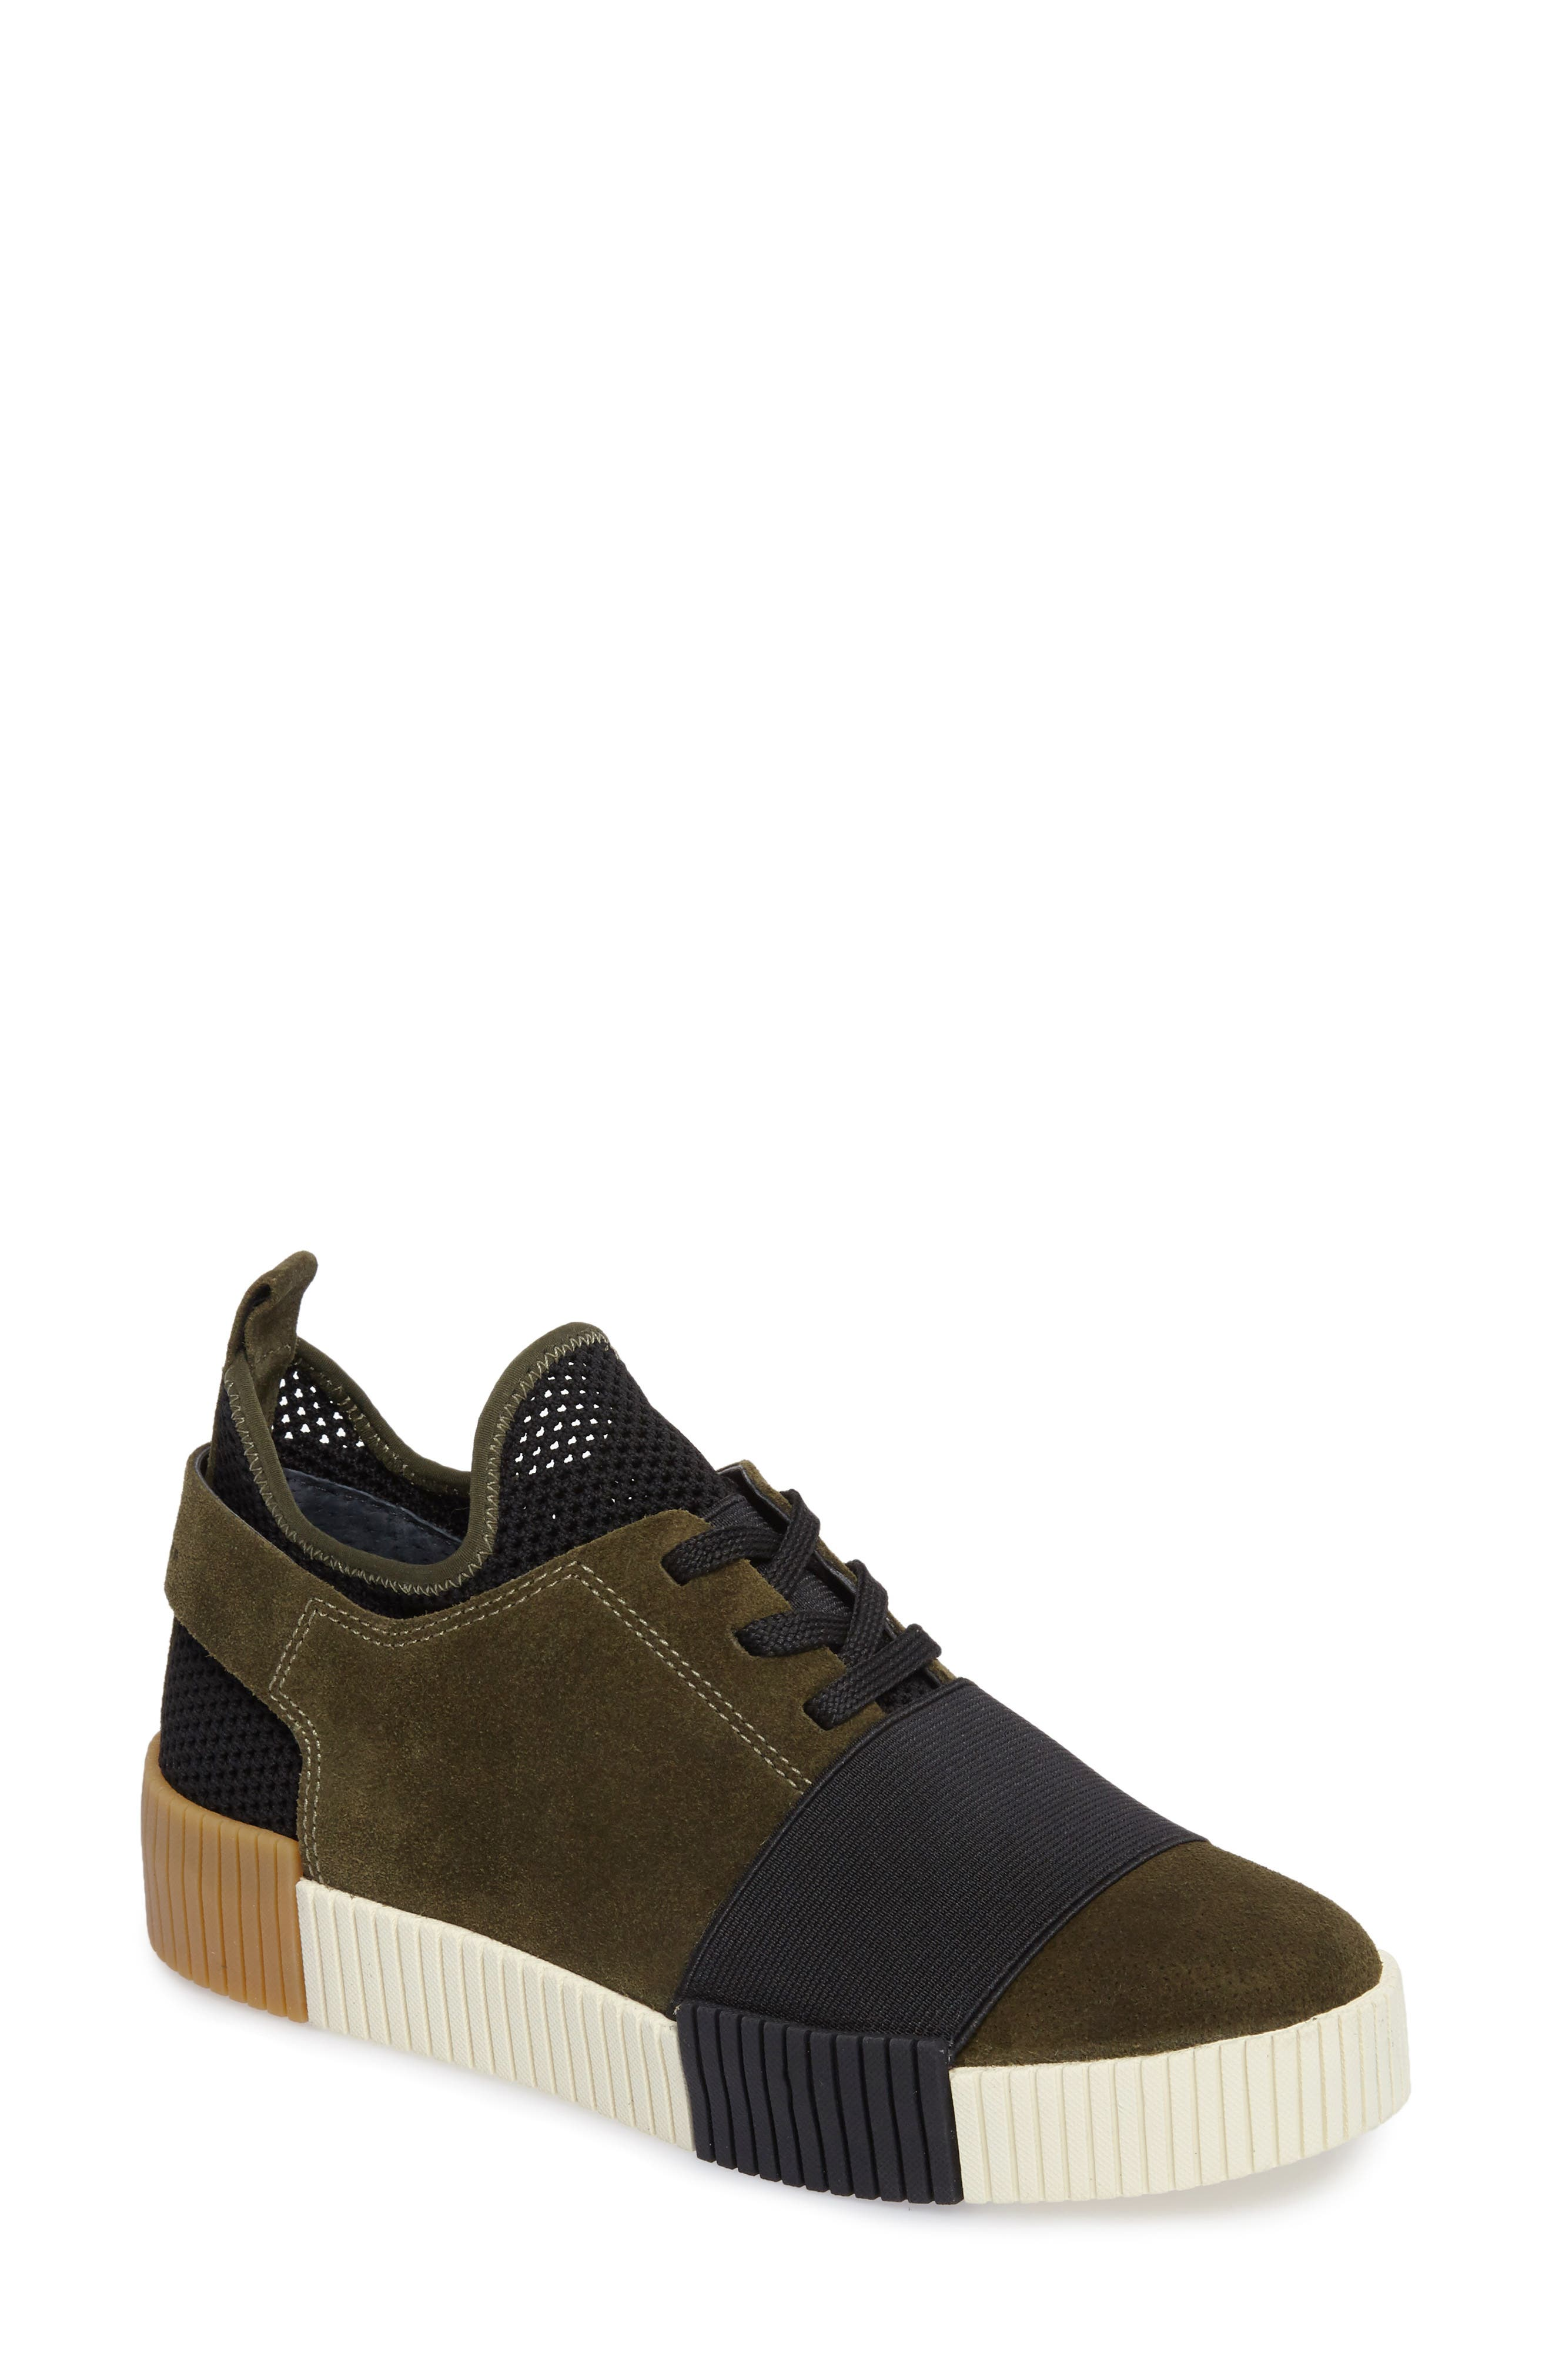 Ryley Platform Sneaker,                         Main,                         color, Green Leather